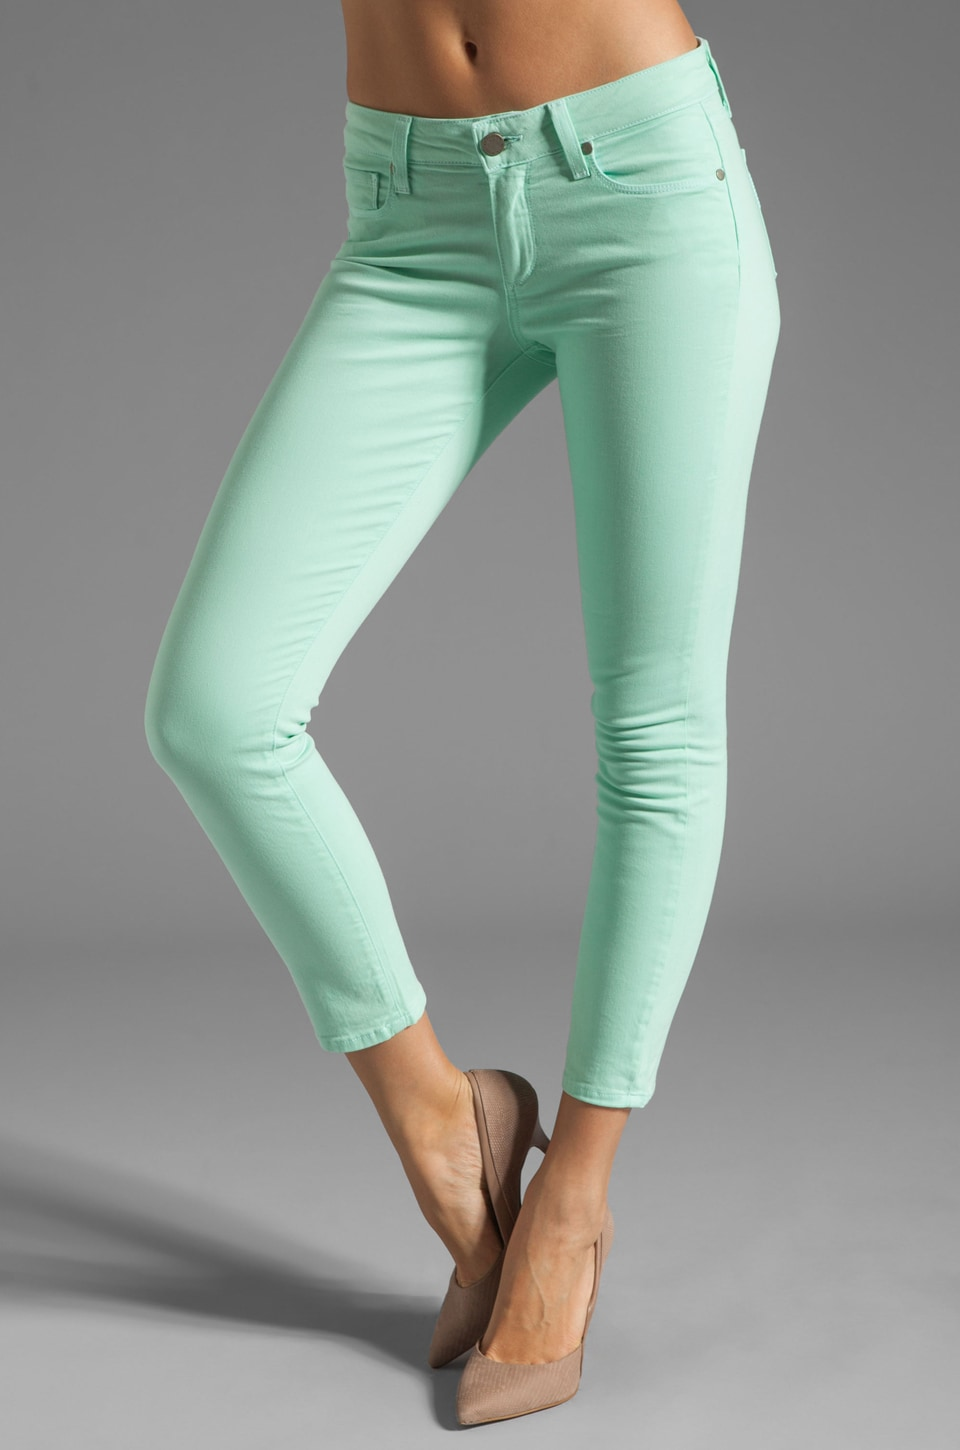 PAIGE Denim Kylie Crop in Glass